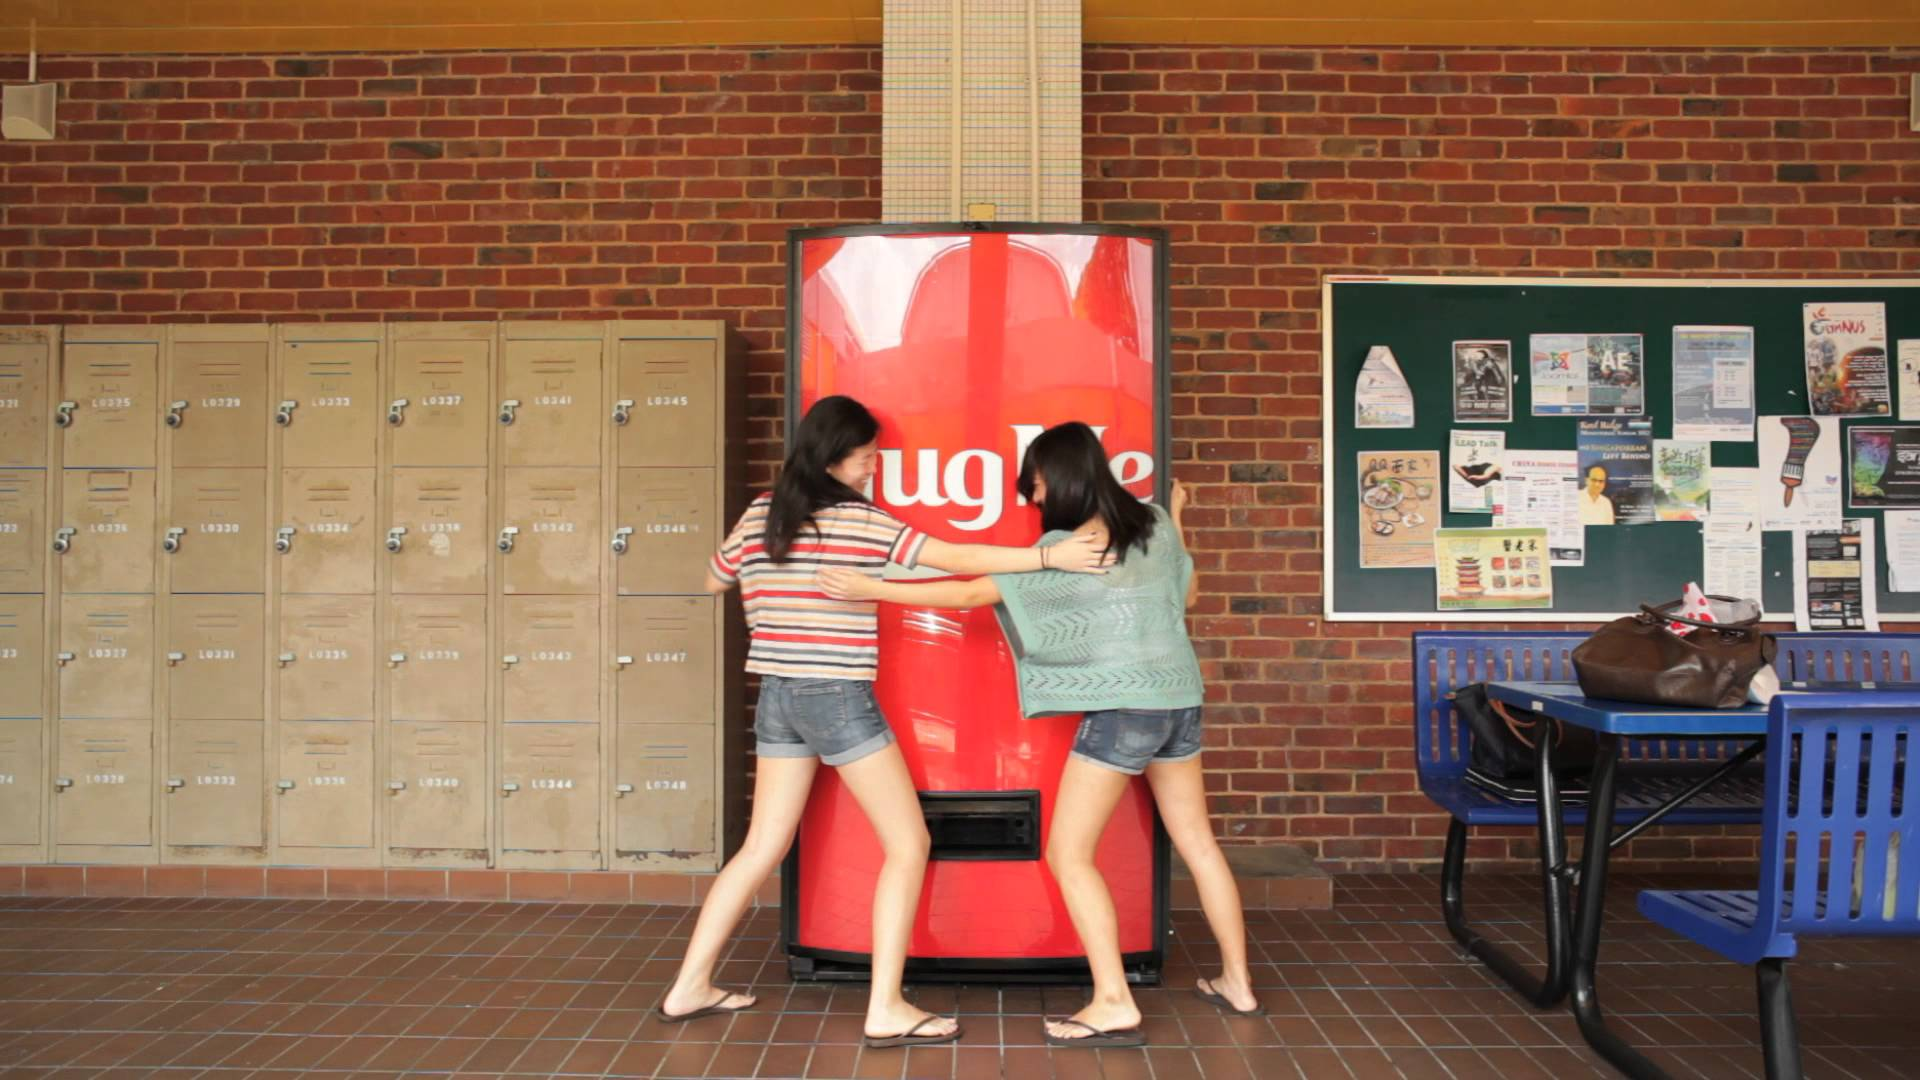 Singapore has Hug Me coca cola machine at the National University of Singapore which gives a bottle of coca cola when somebody wraps his her arms around the machine.